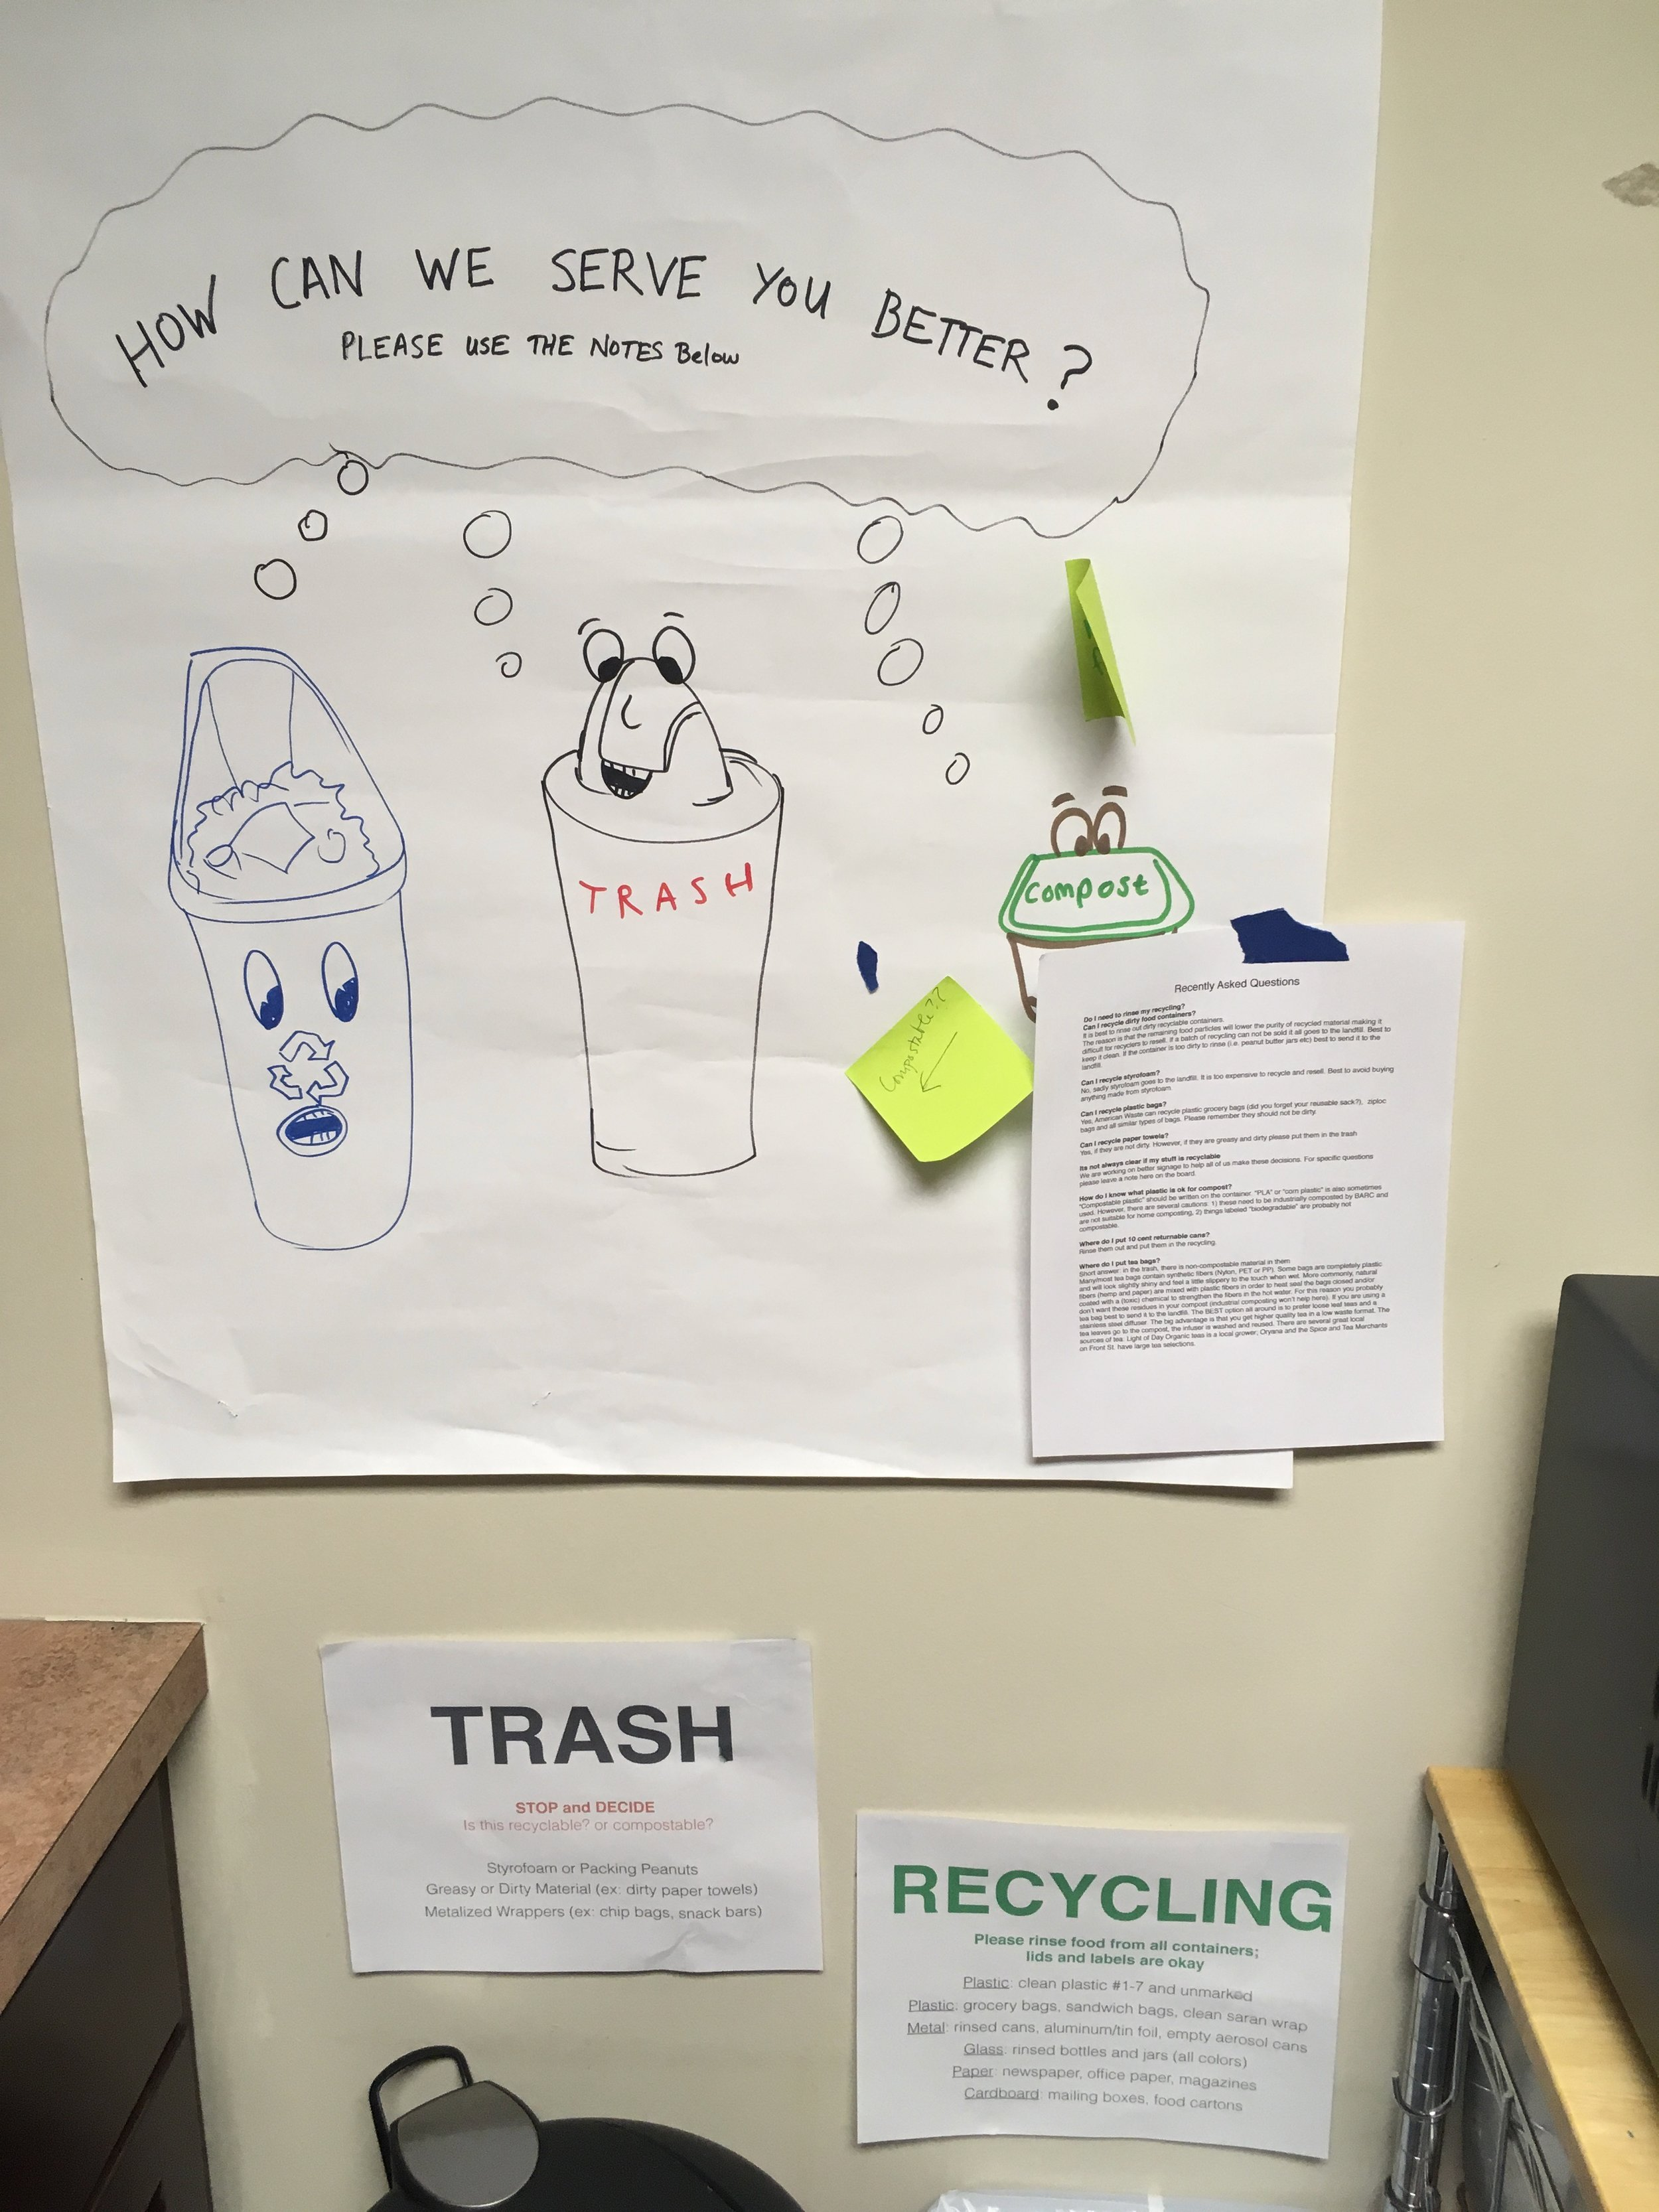 Efforts to educate co-workers in the kitchen where we hold our workshop sessions